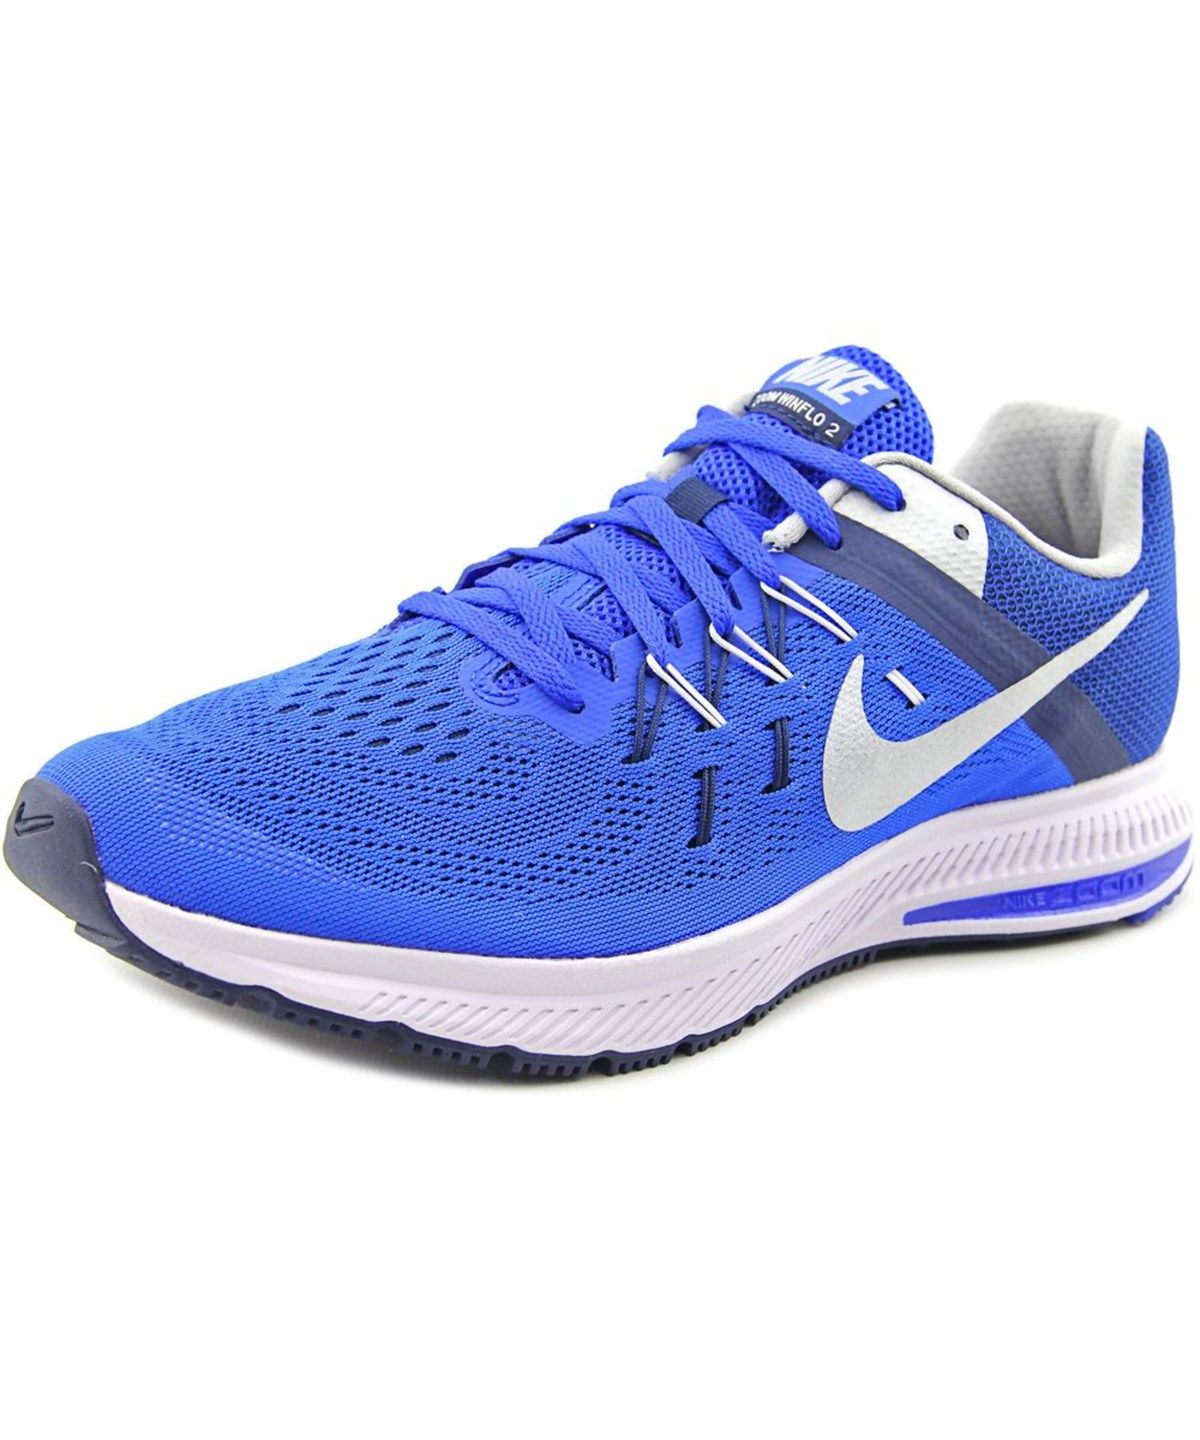 outlet store 26160 71471 NIKE Nike Zoom Winflo 2 Round Toe Canvas Running Shoe .  nike  shoes   sneakers